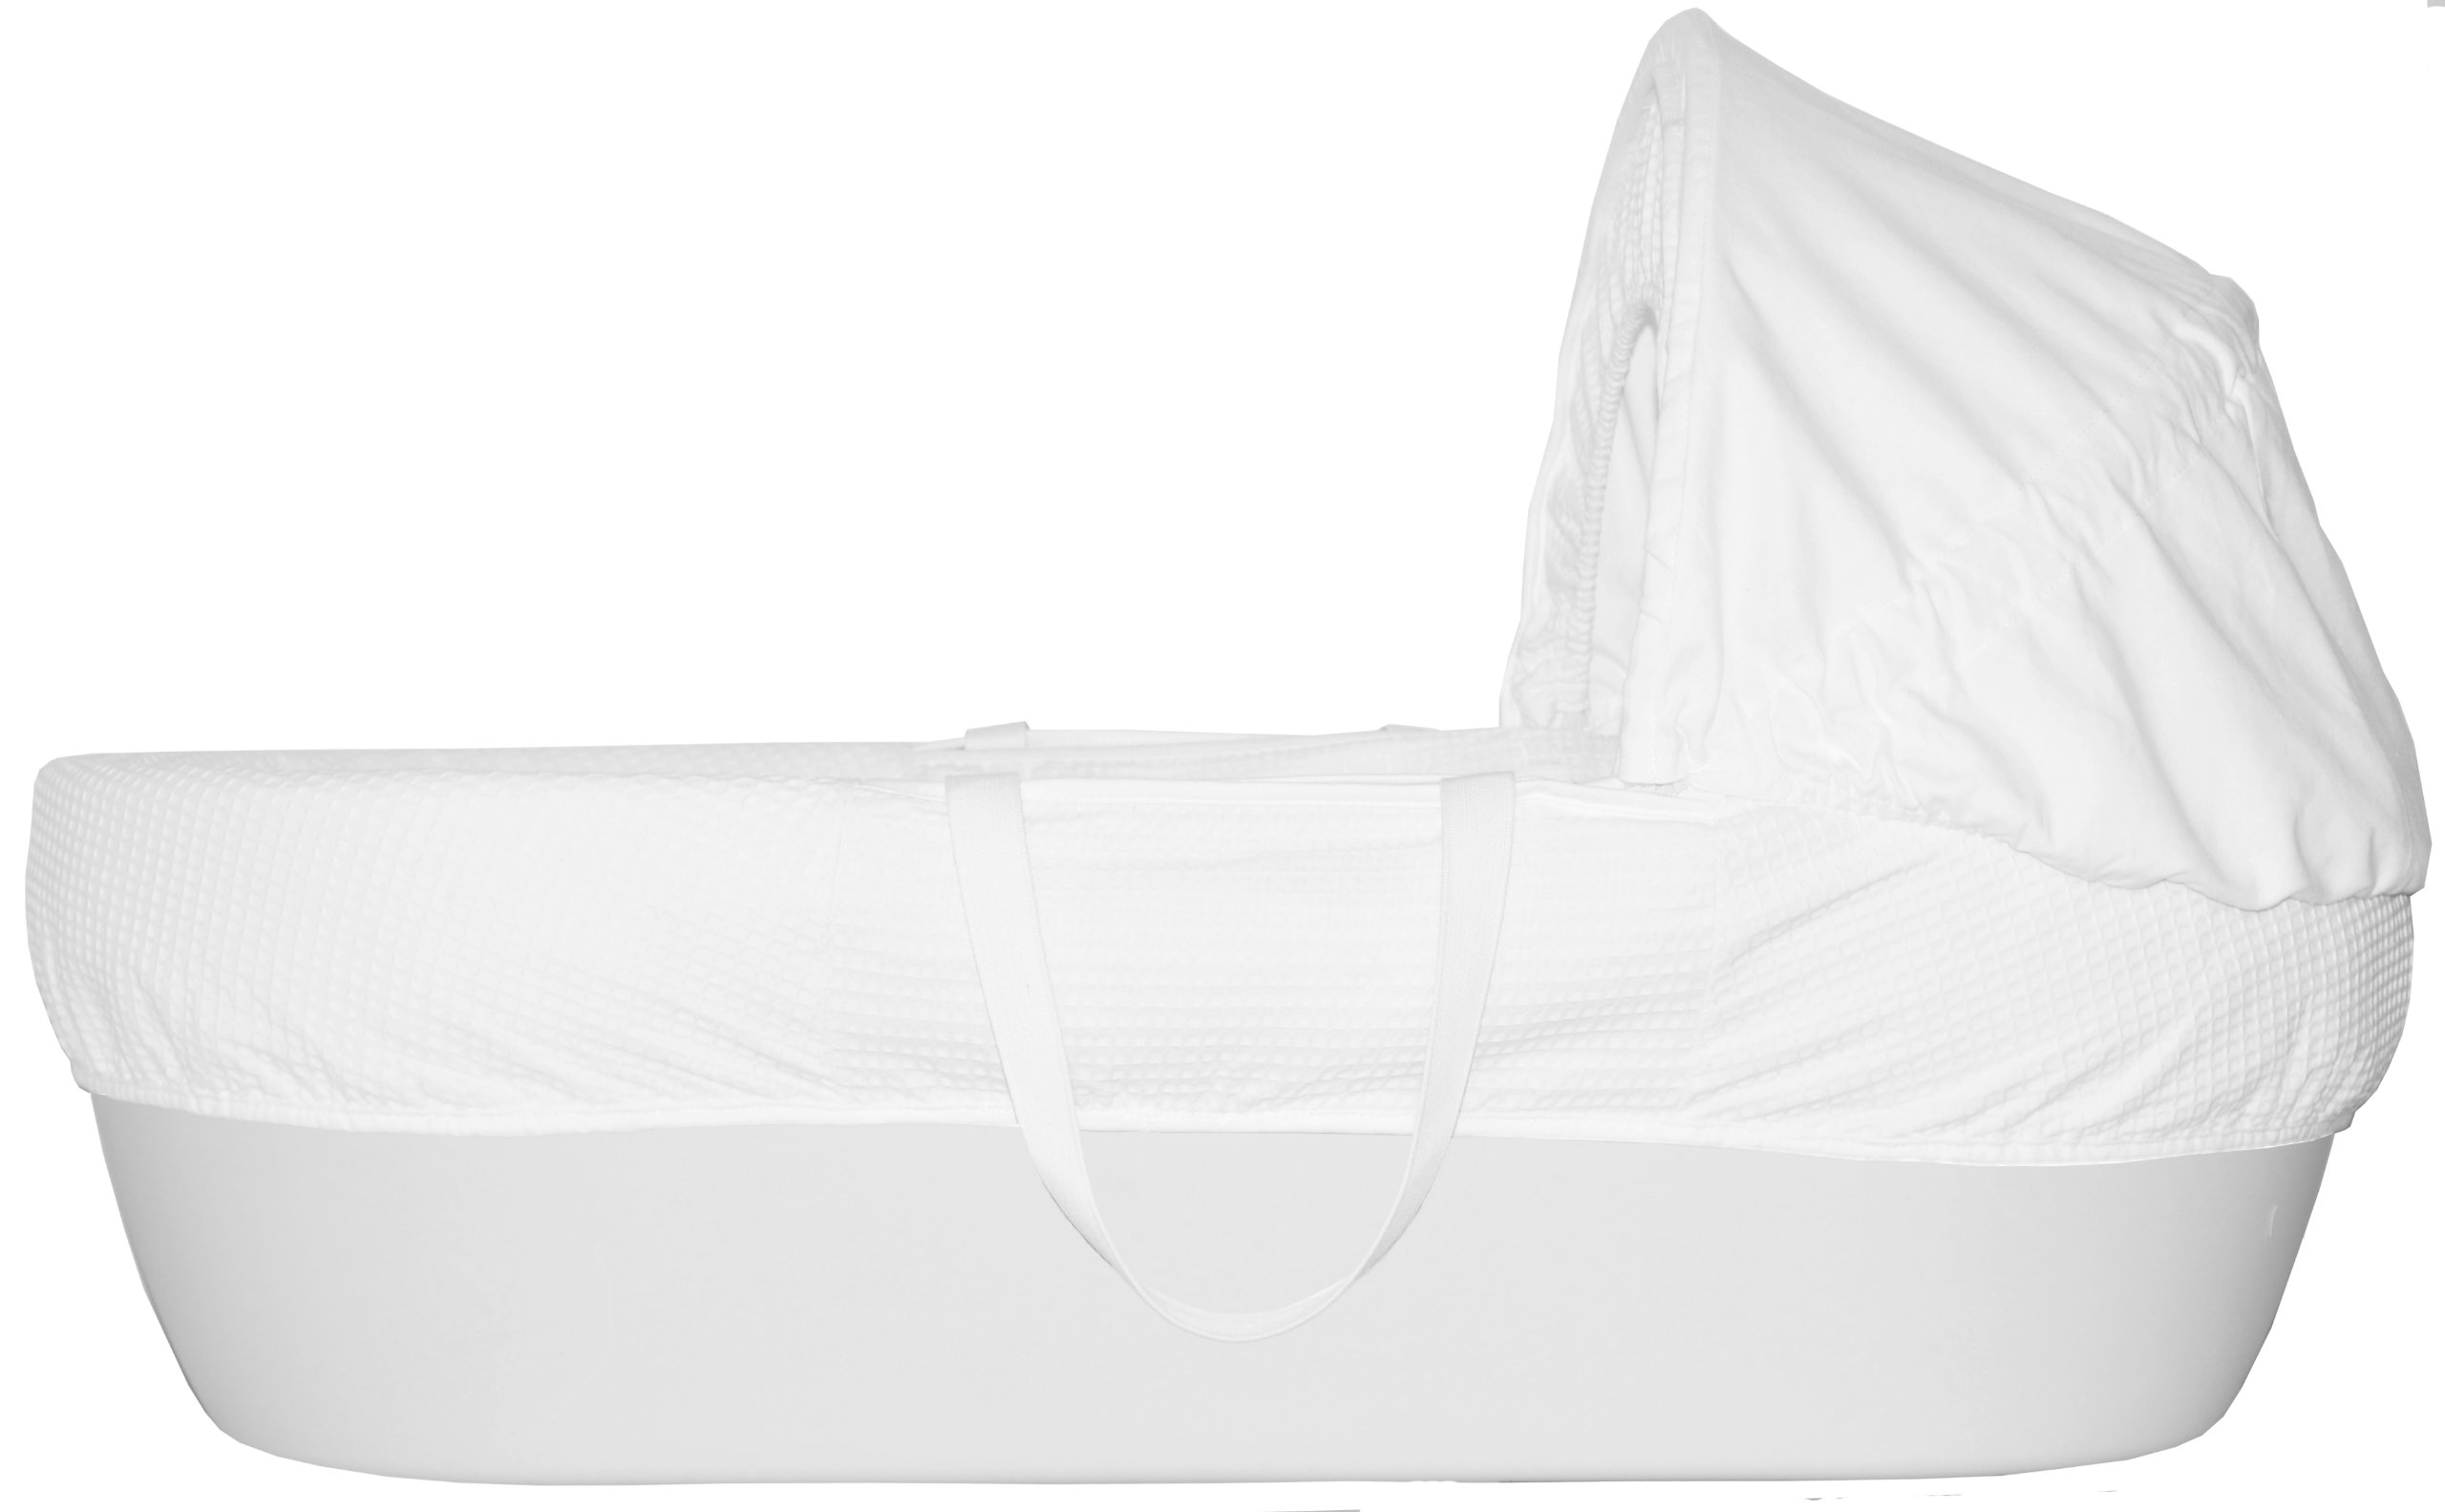 Shnuggle Moses Basket with White Waffle Cotton Dressing, Hood and Mattress - White Basket  Shnuggle Classic Moses Basket with stay up hood Hypoallergenic and easy to clean Super strong and long lasting 2